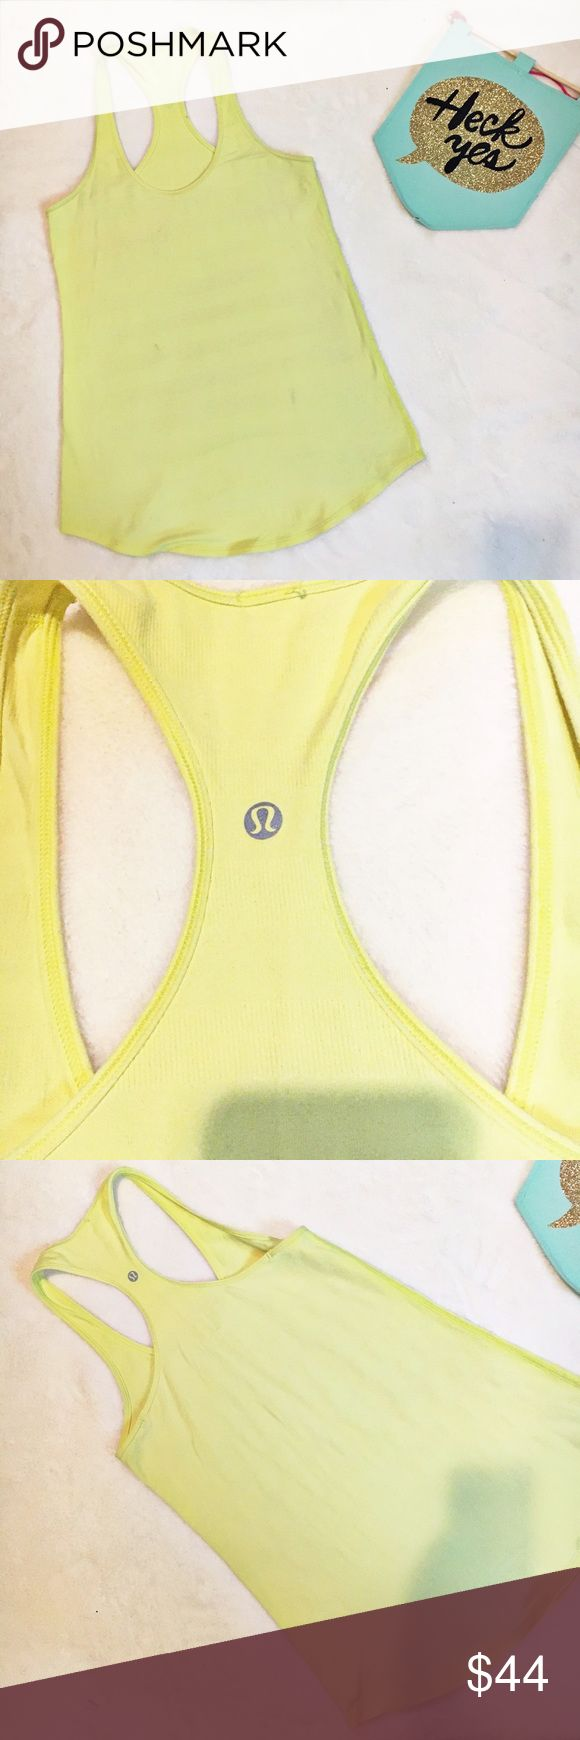 Lululemon yellow razorback tank top 8 This tank is in excellent used condition. There is some texture to the design of the top. The 4th photo shoes it up close. Also, if you feel like the straps are to long you can bring it in to the lululemon store for alterations..The size tags have been taken off just because they were itchy but it is a size 8 approx measurements are: length 28 inches bust 30 inches lululemon athletica Tops Tank Tops